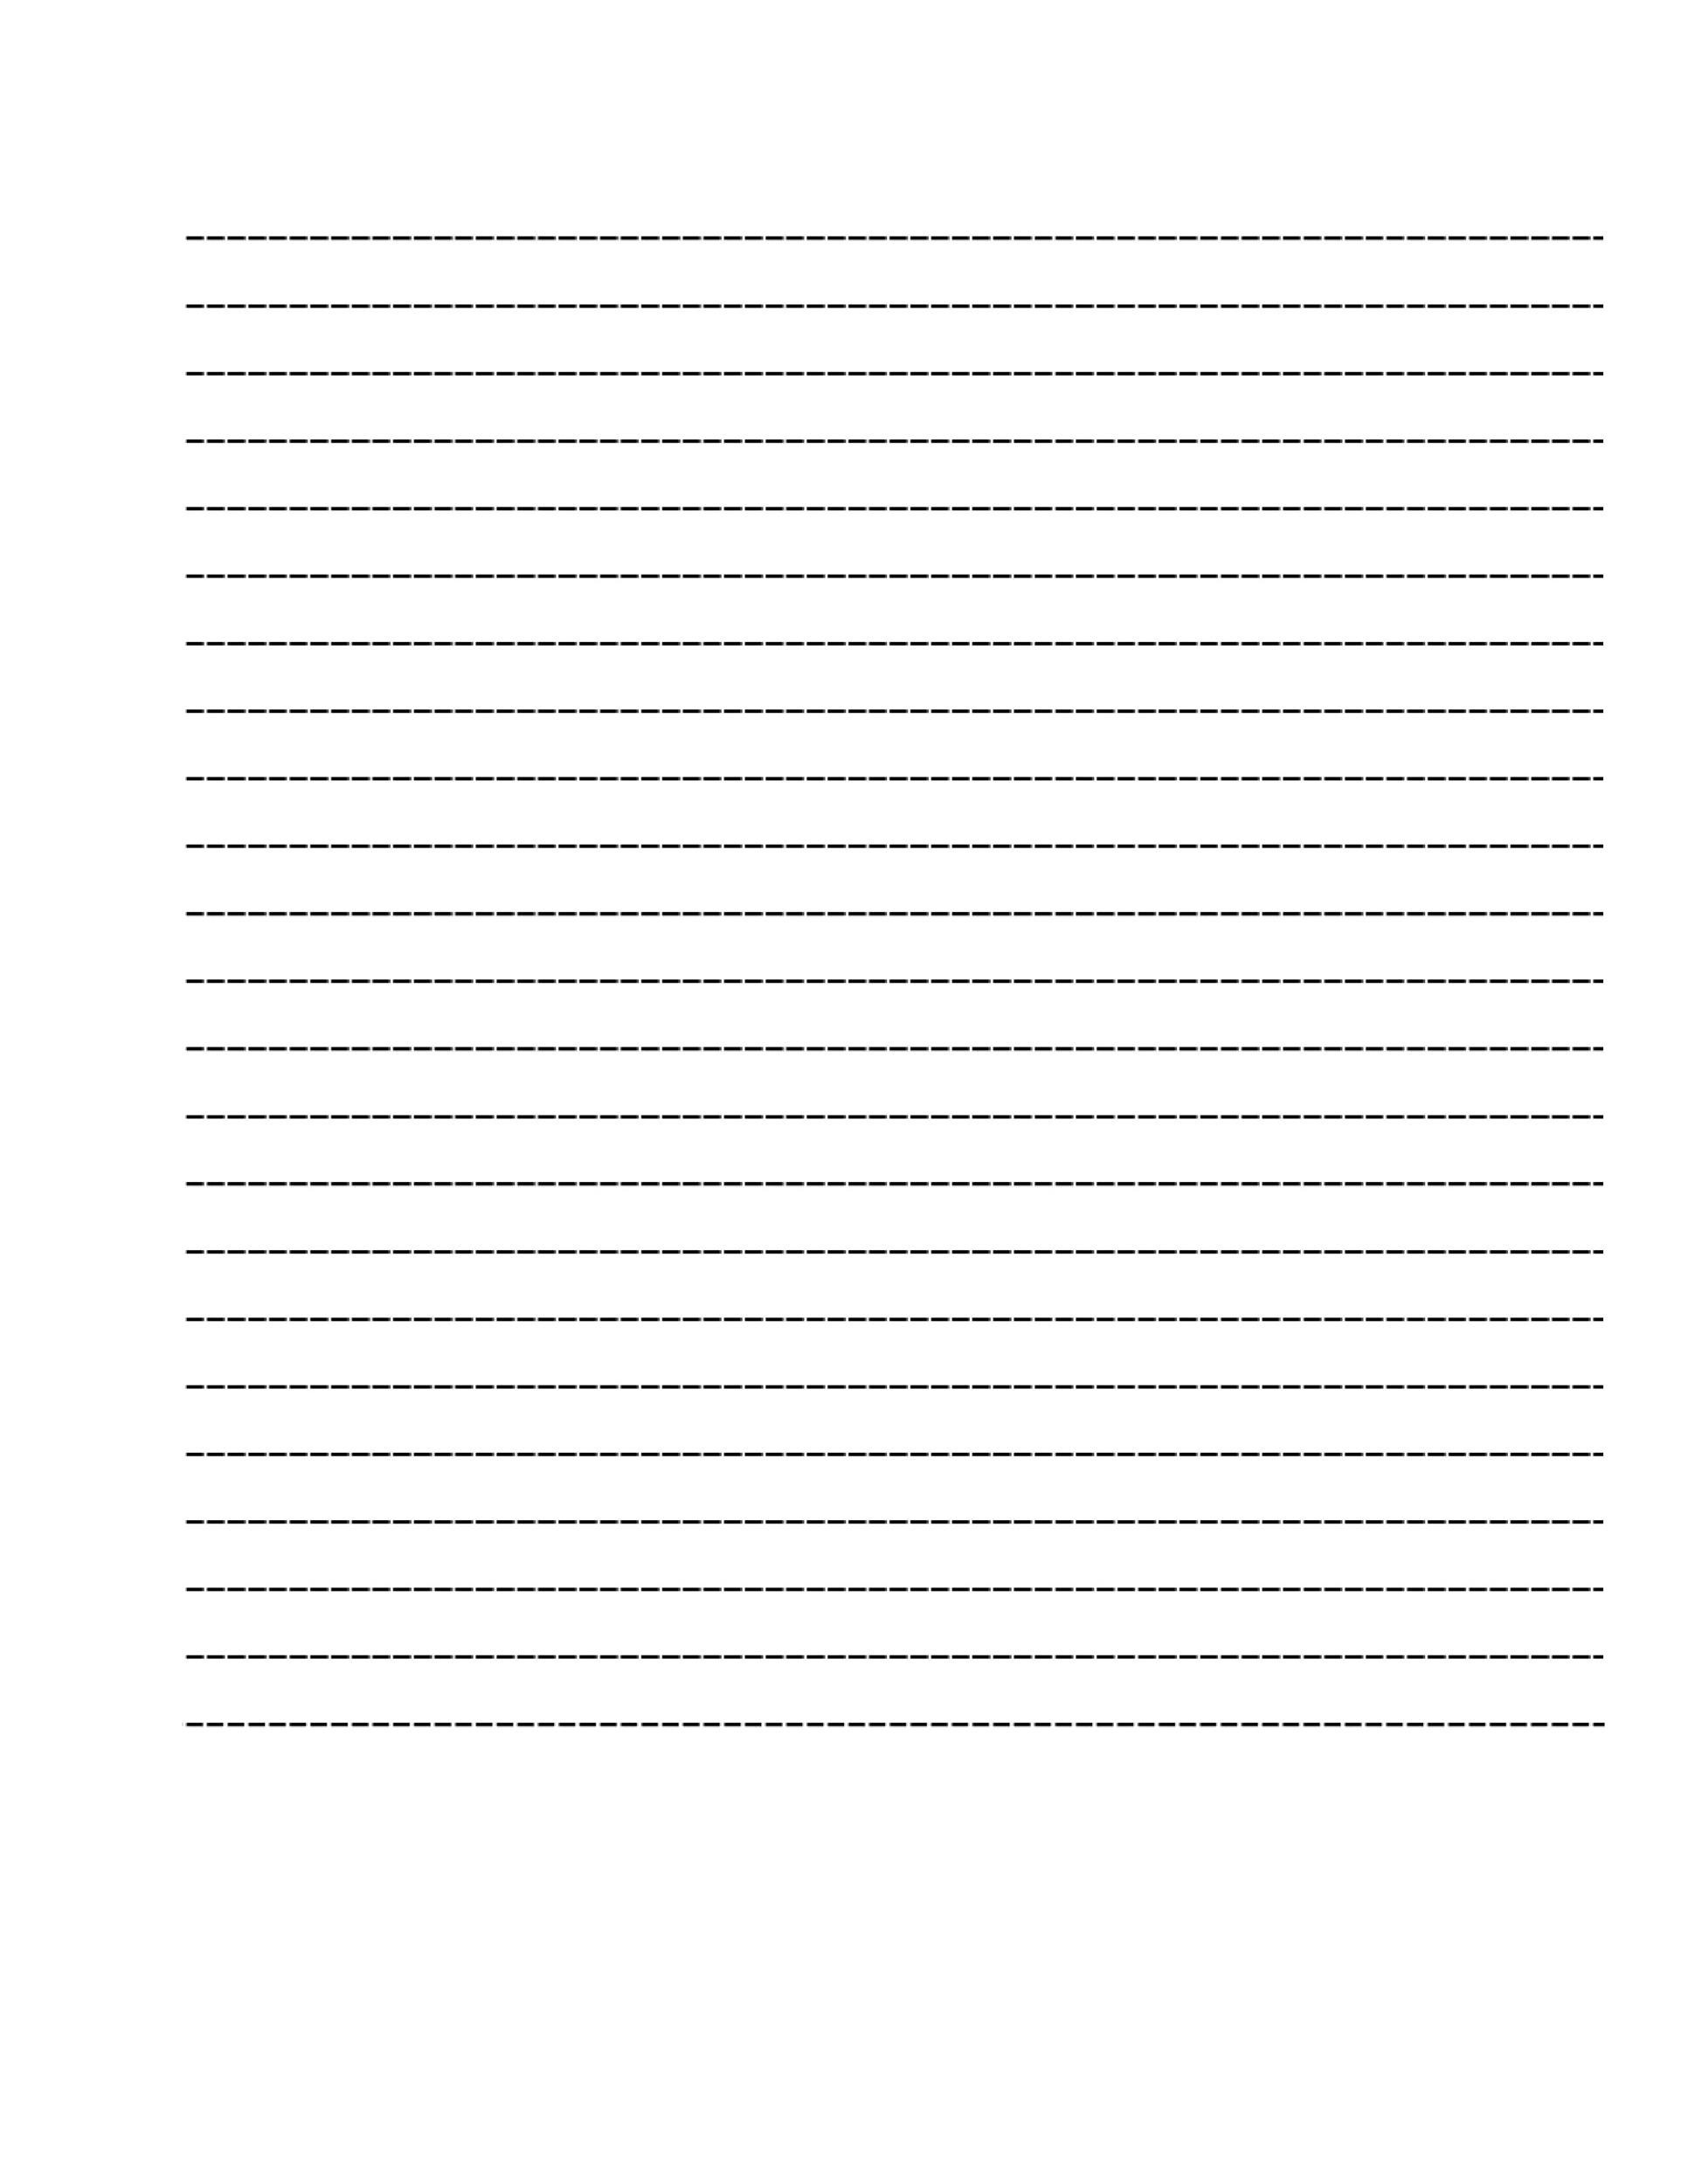 Free lined paper template 24